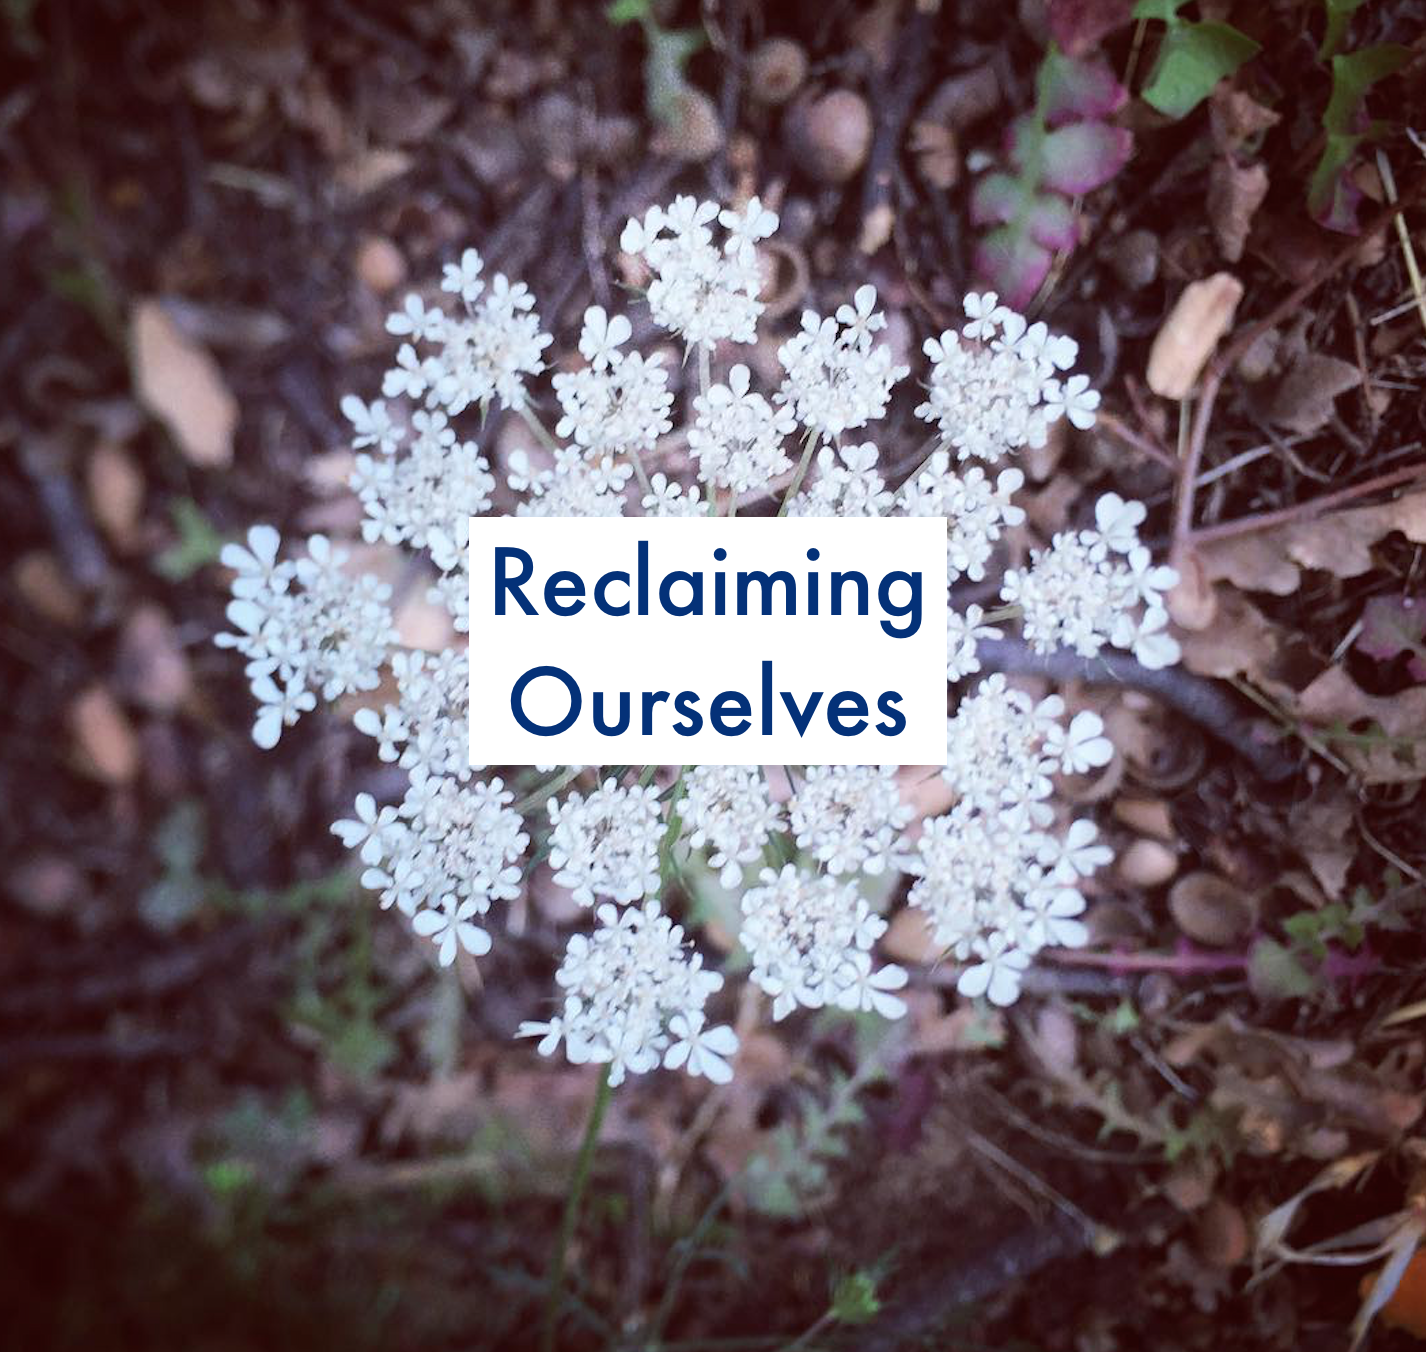 Reclaiming Ourselves - A Community Experience